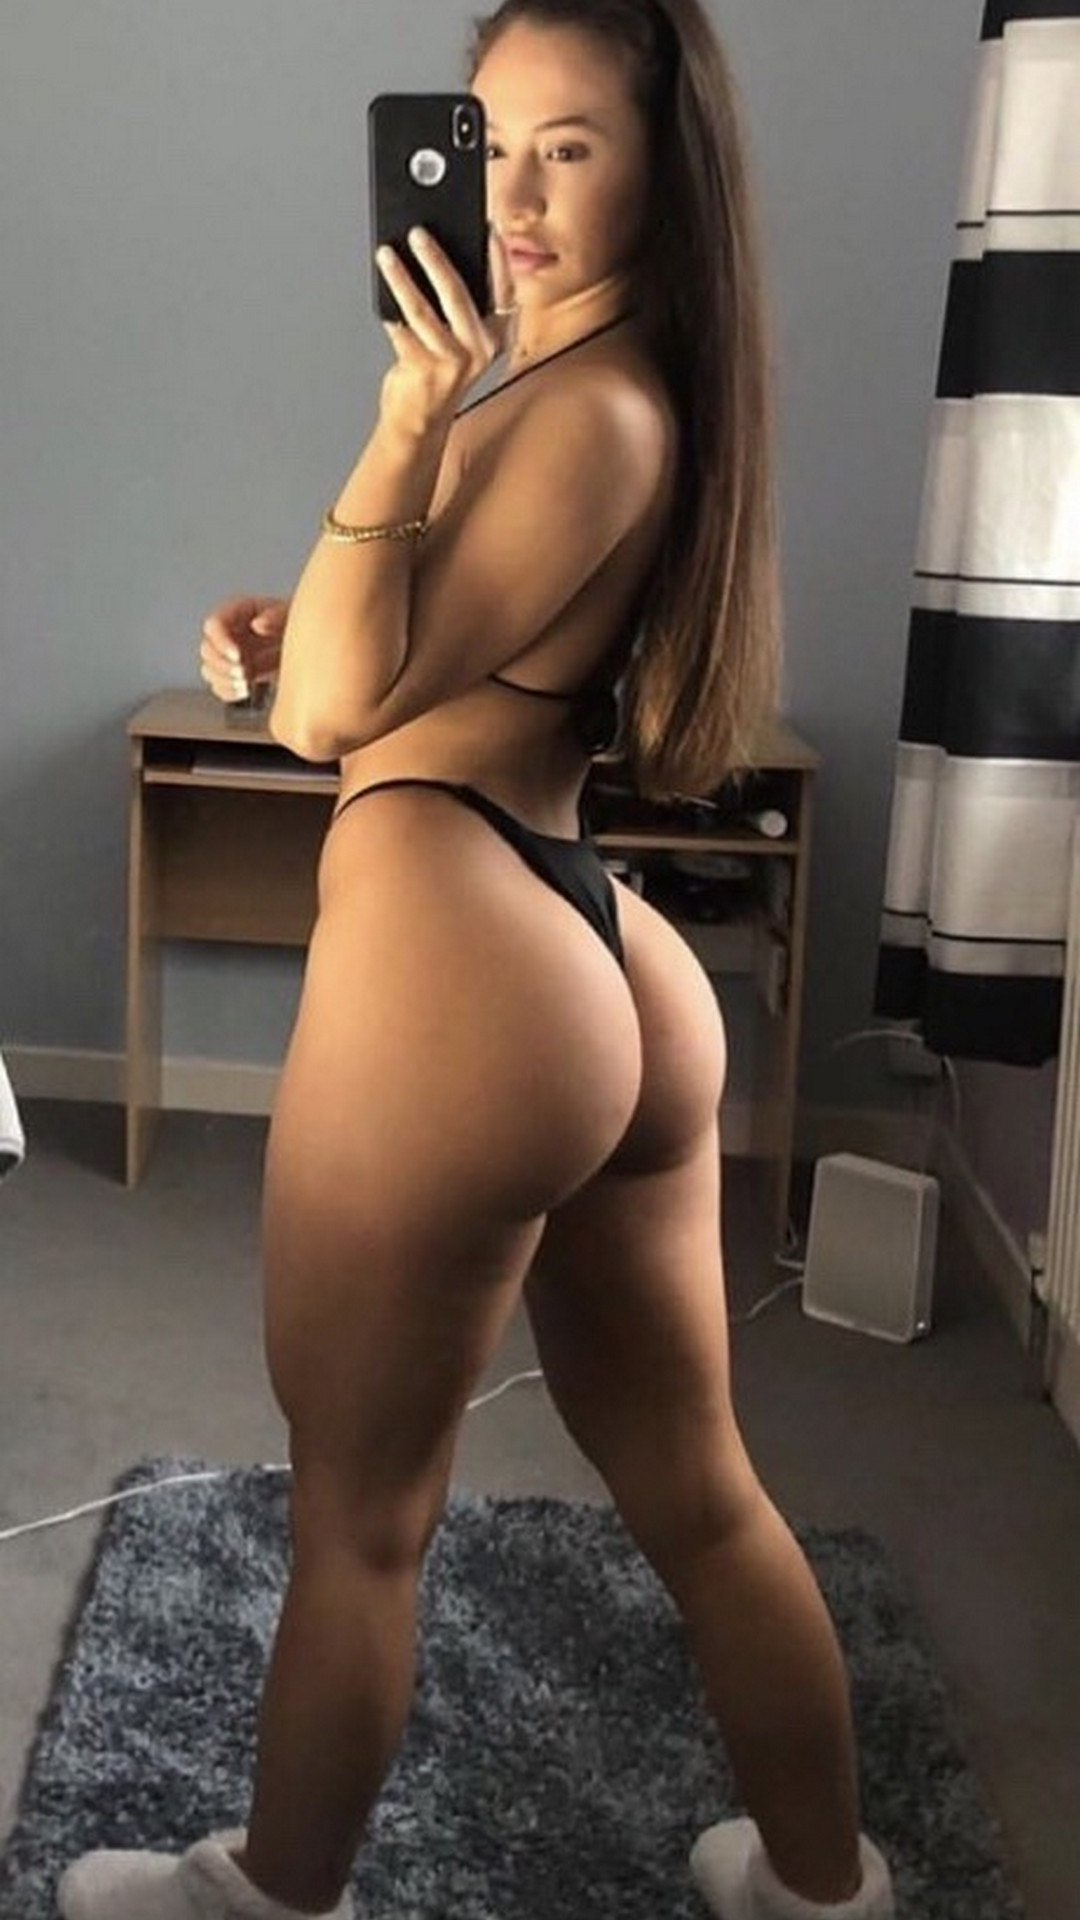 Tits And Ass Nude photo 3